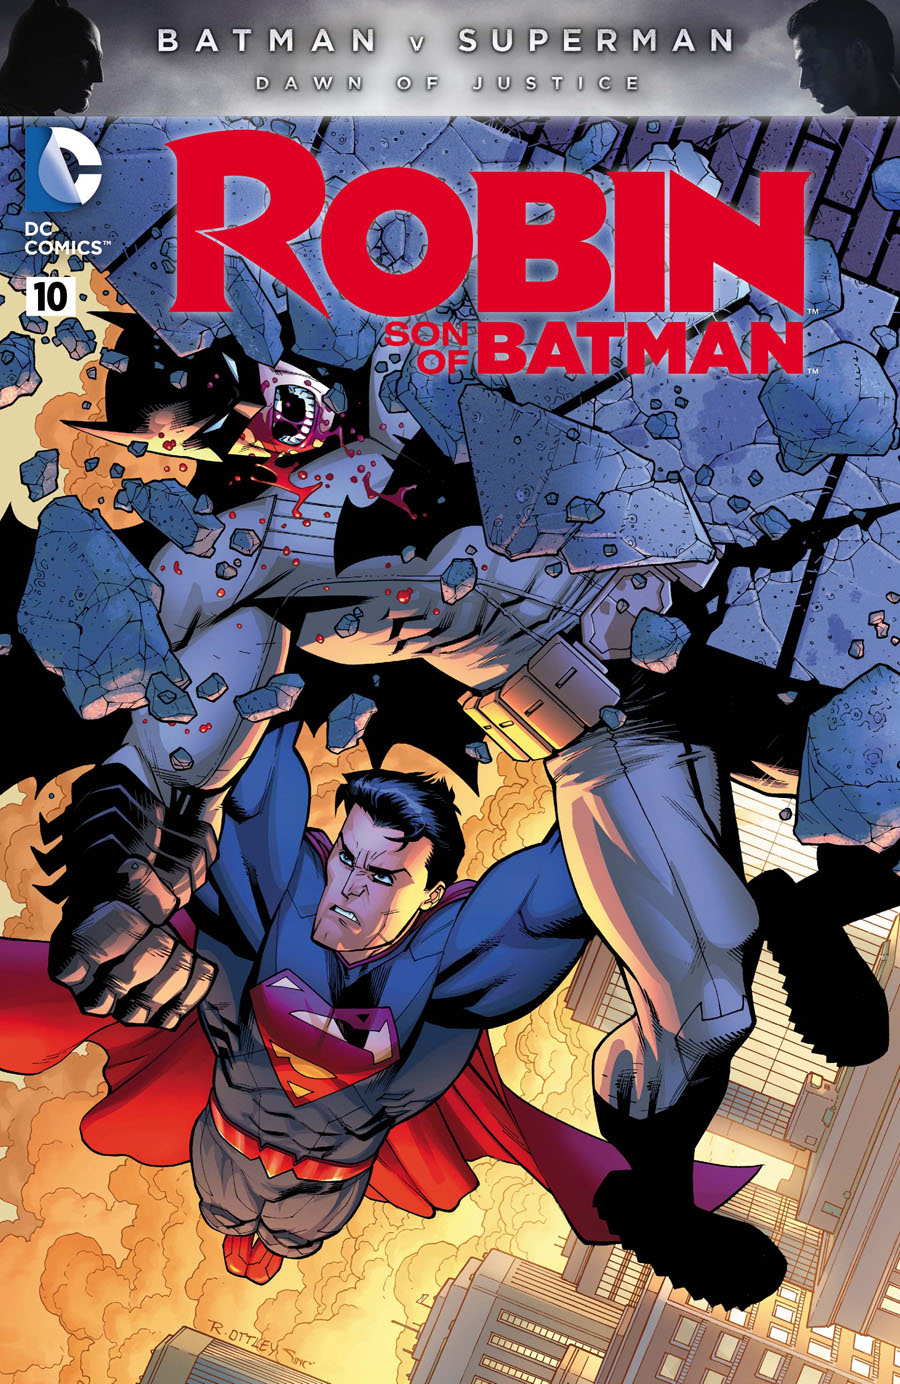 Robin Son Of Batman #10 Cover C Variant Ryan Ottley Batman v Superman Dawn Of Justice Color Cover Without Polybag